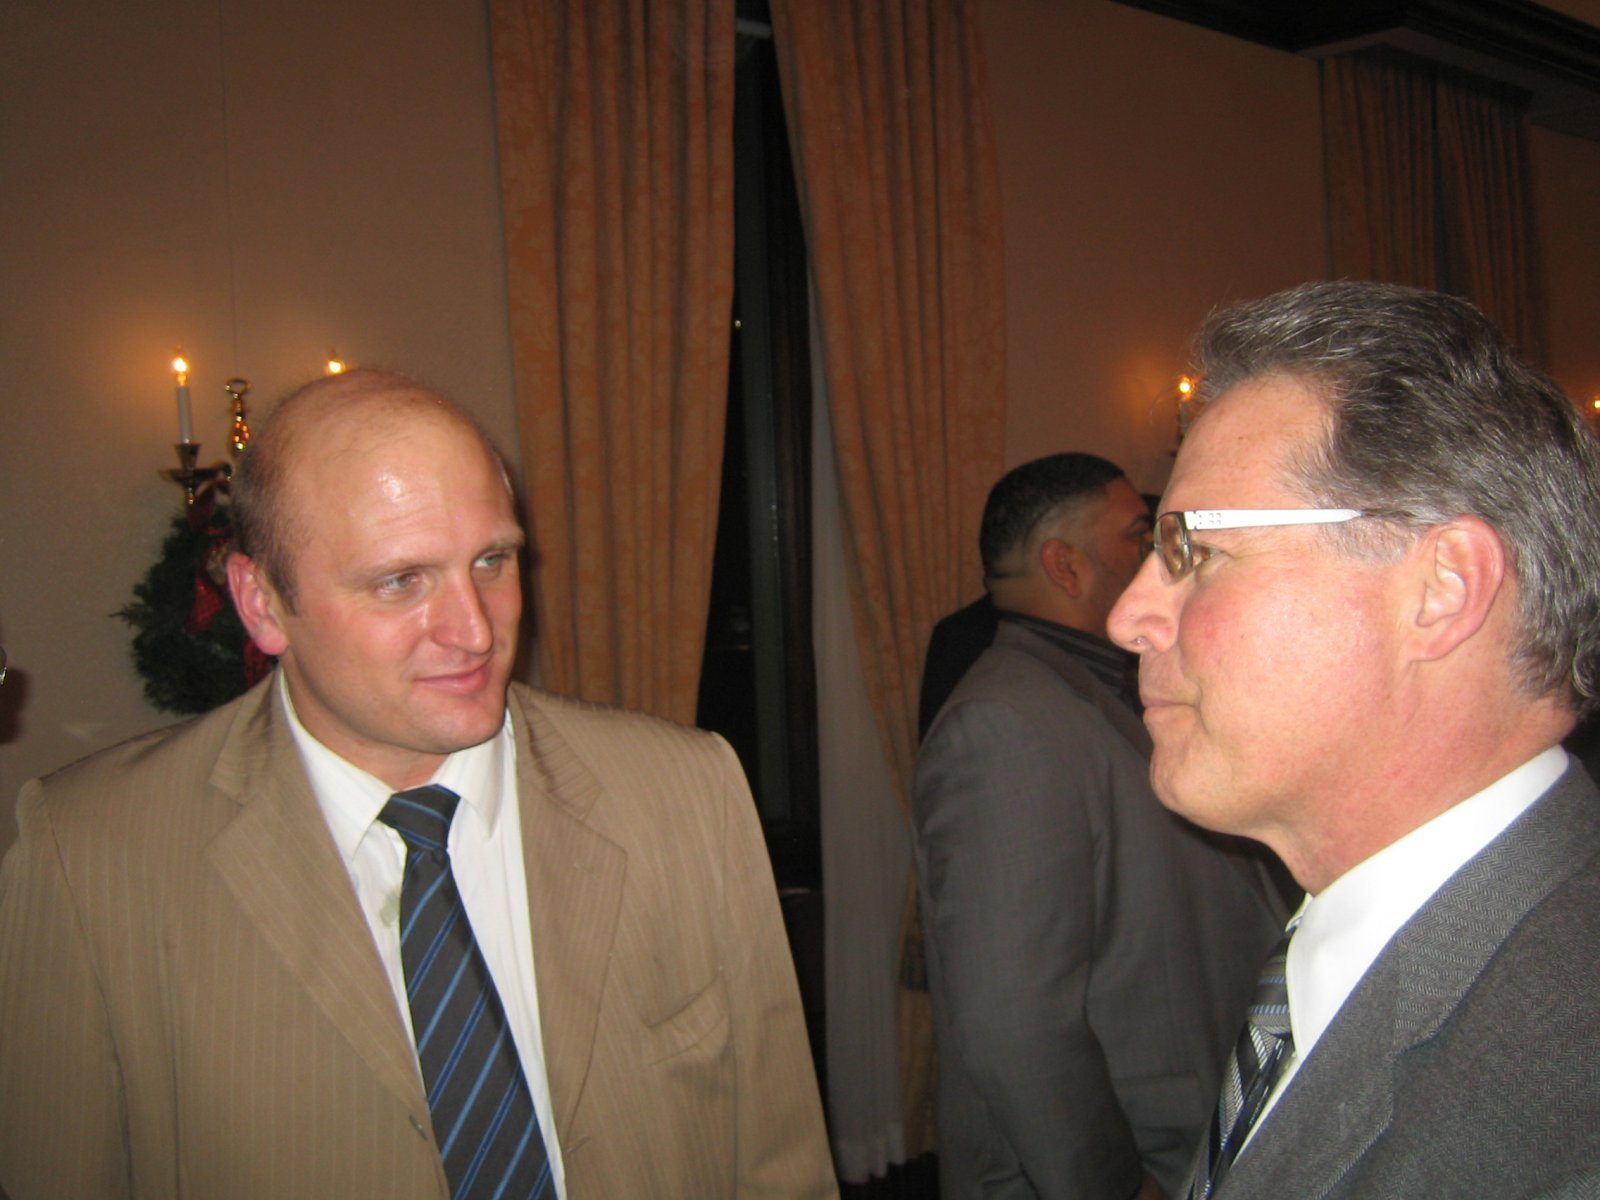 Ald. Nik Kovac and Mark Thomsen.